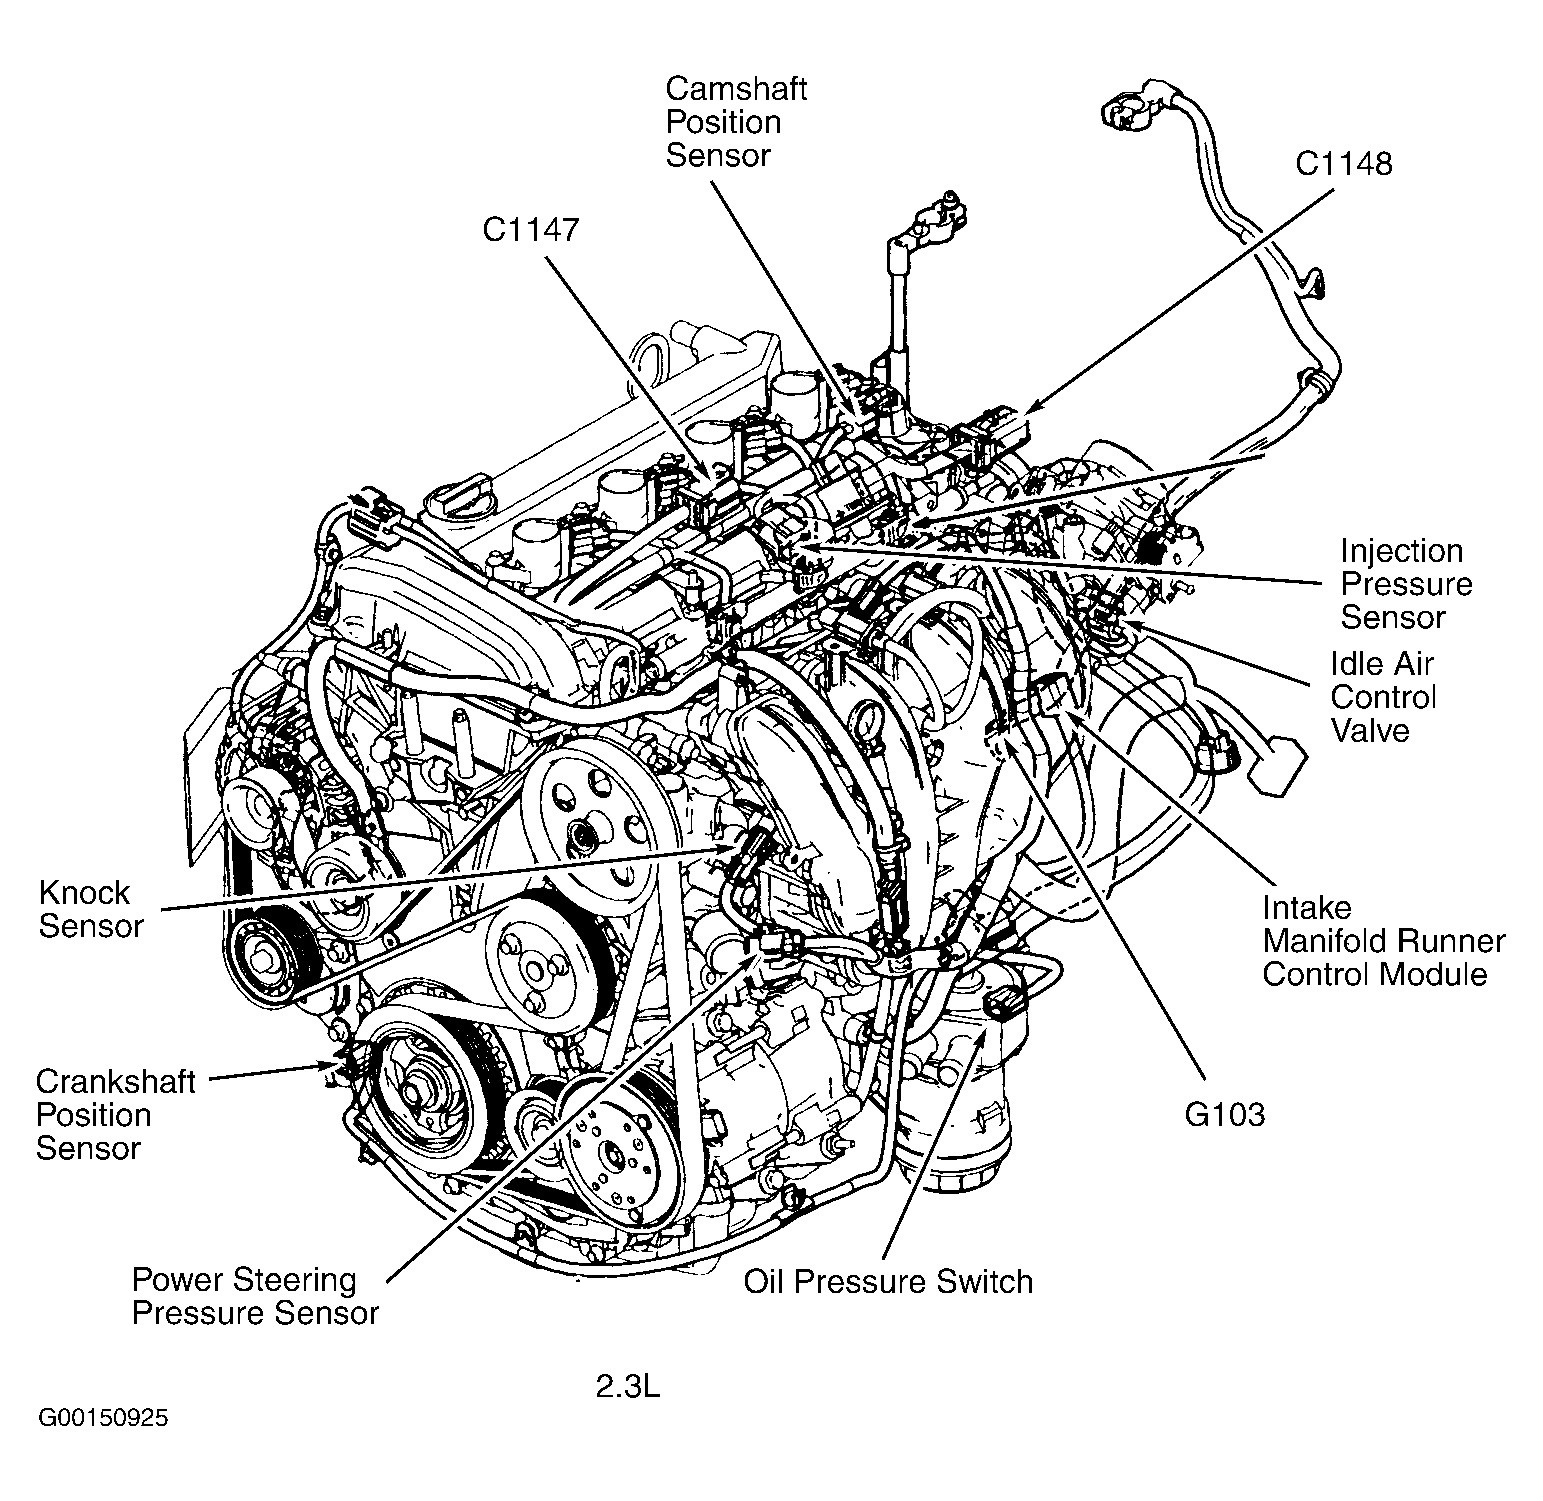 Ford Taurus Thermostat Diagram